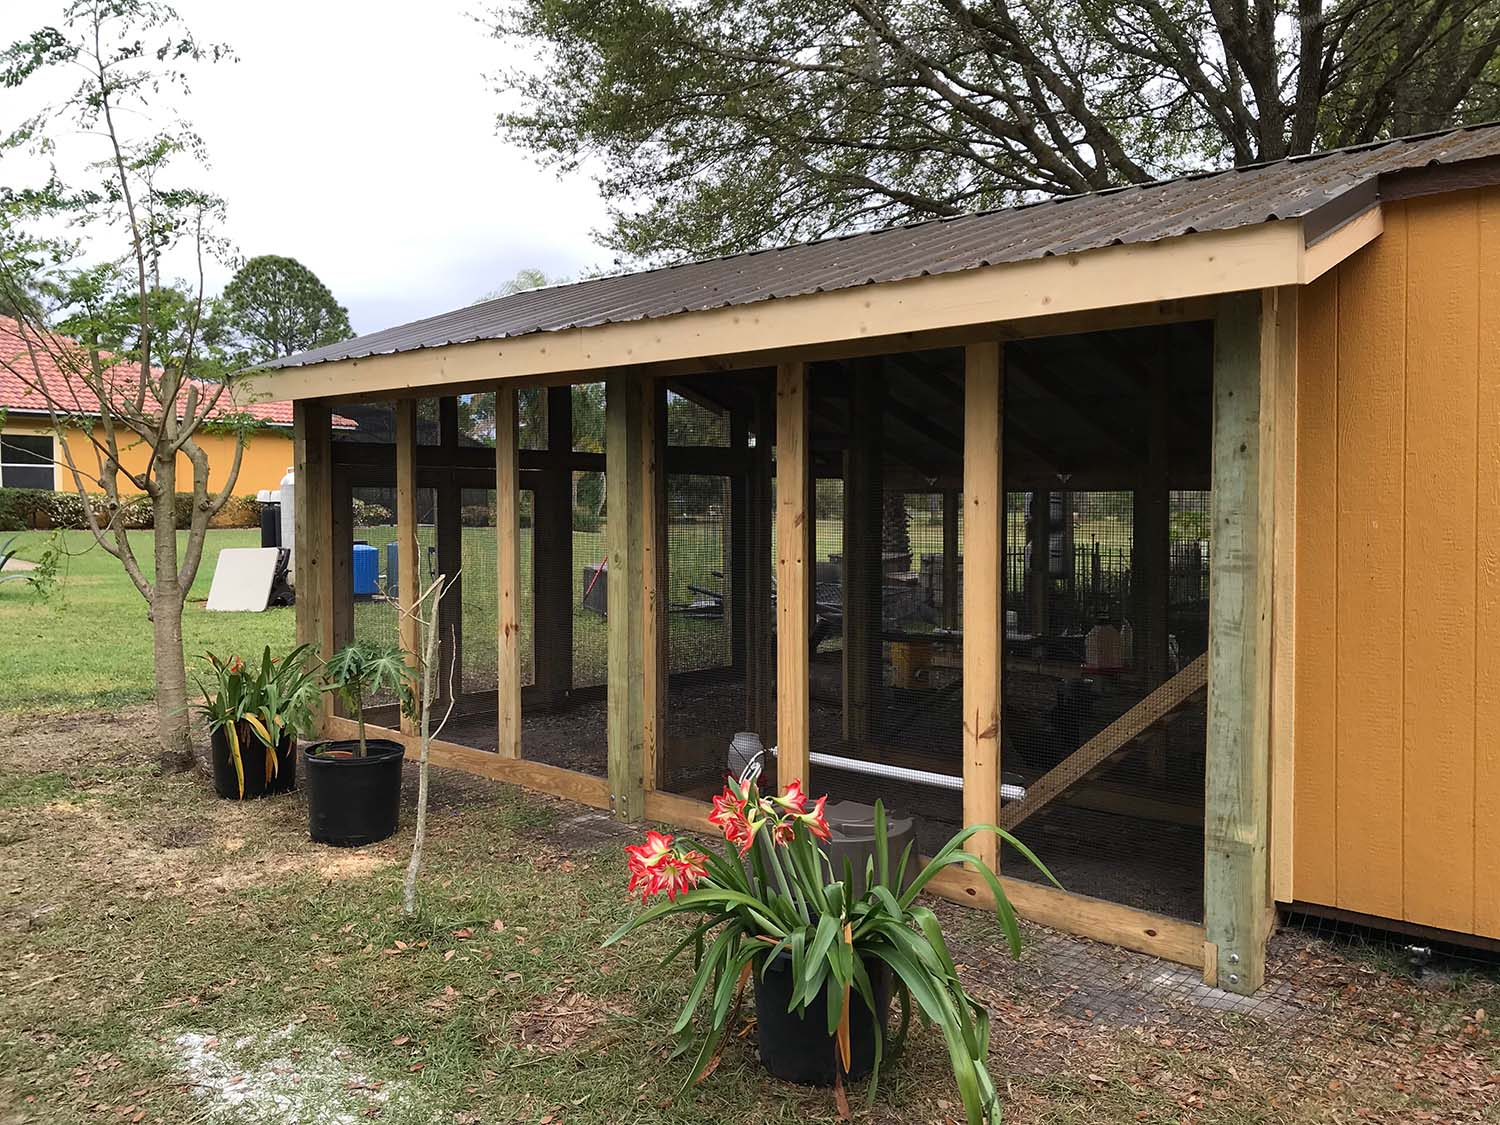 Side view of custom chicken run built on converted shed in Orlando, Florida